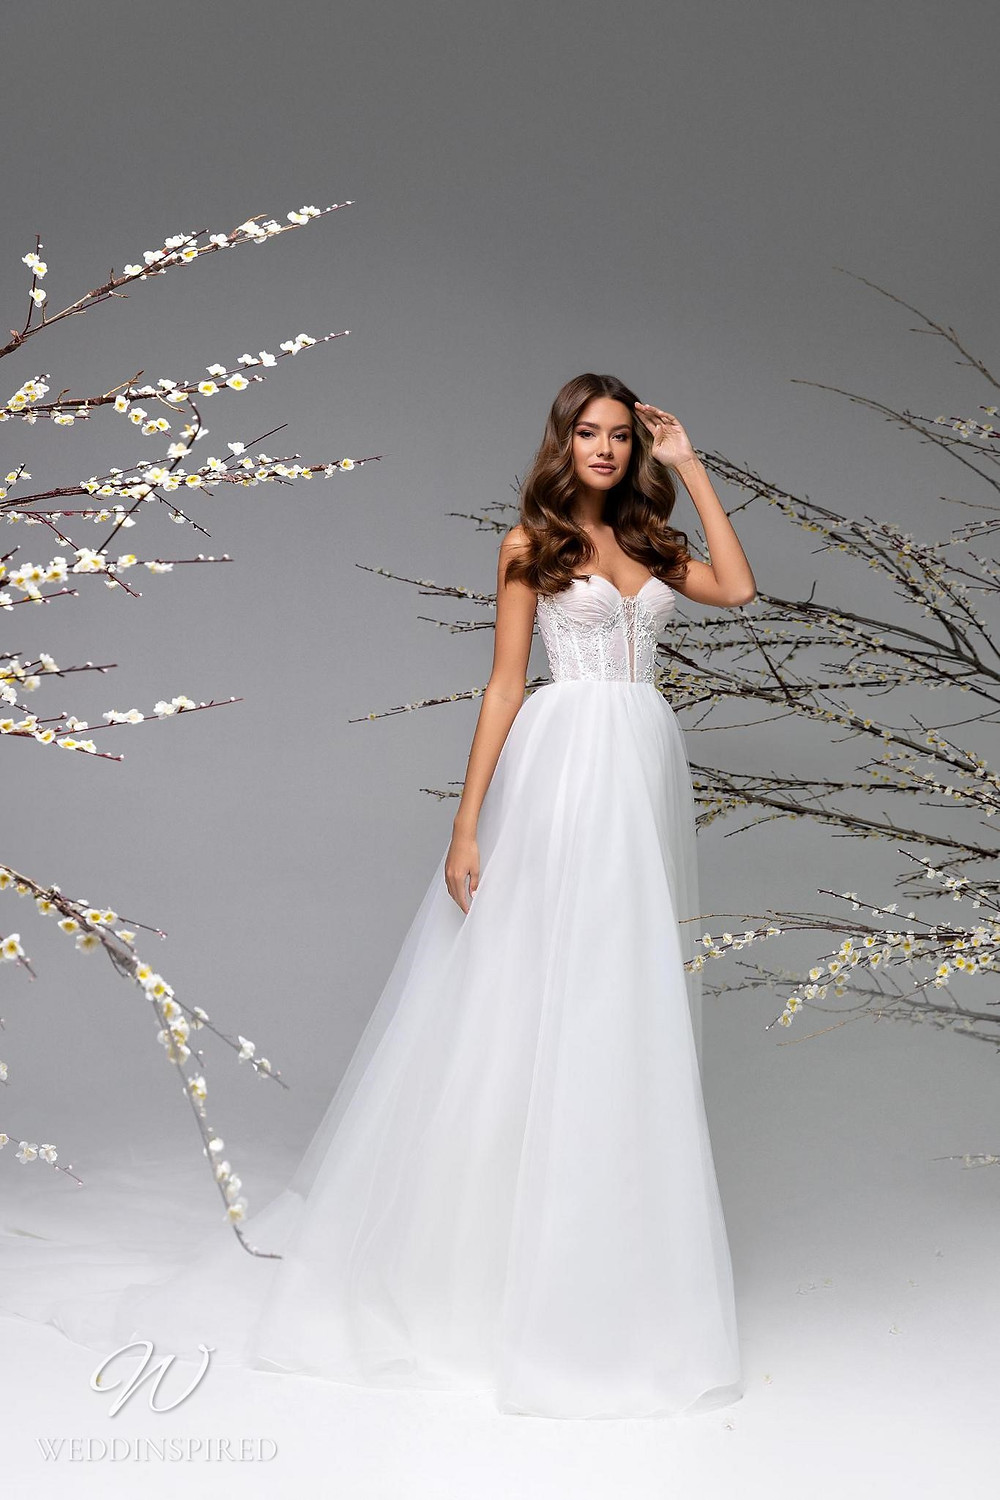 A Ricca Sposa strapless tulle A-line wedding dress